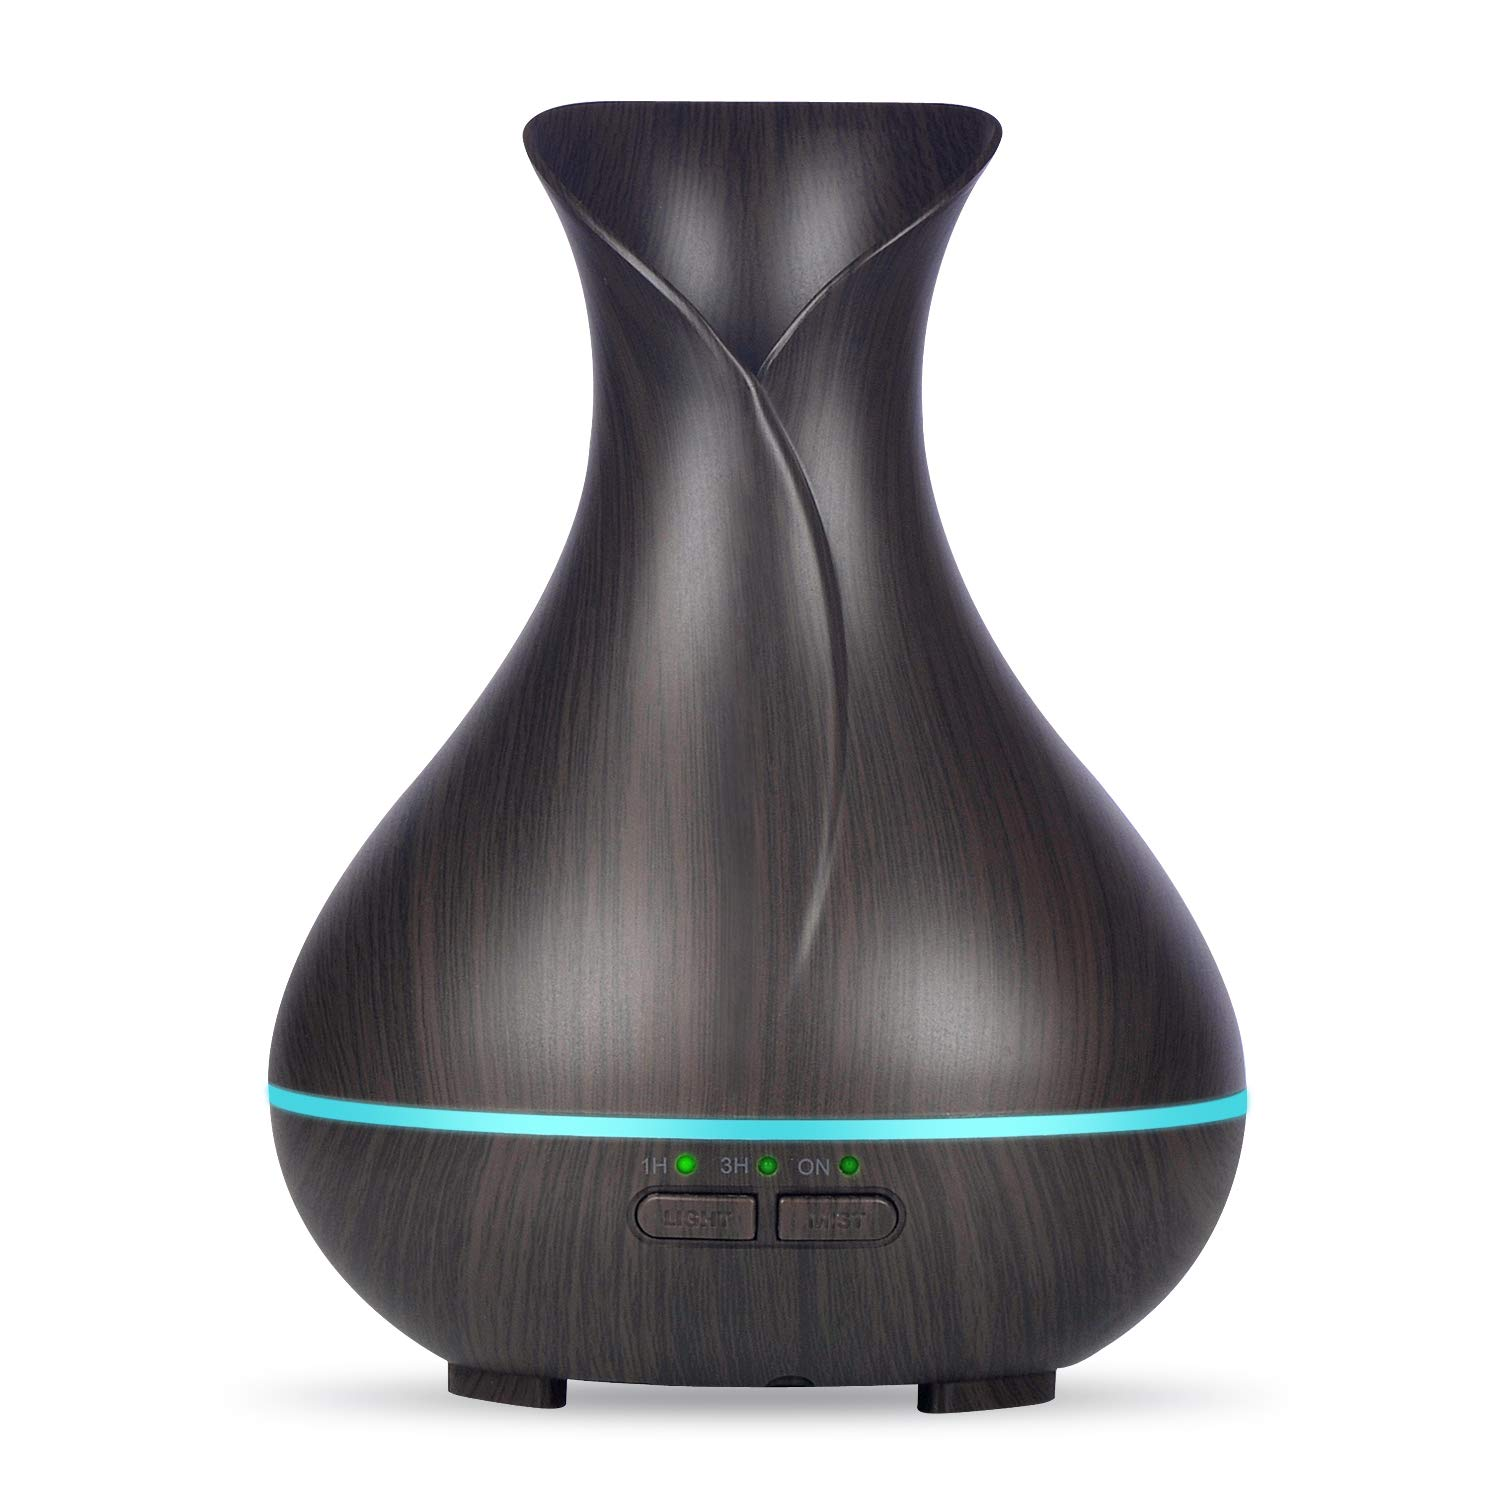 OliveTech Mini Essential Oil Diffuser, 150ml Wood Grain Aromatherapy Diffuser Ultrasonic Cool Mist Aroma Humidifier with Waterless Auto Shut-off Diffuser for Essential Oil for Home Office Bedroom Baby